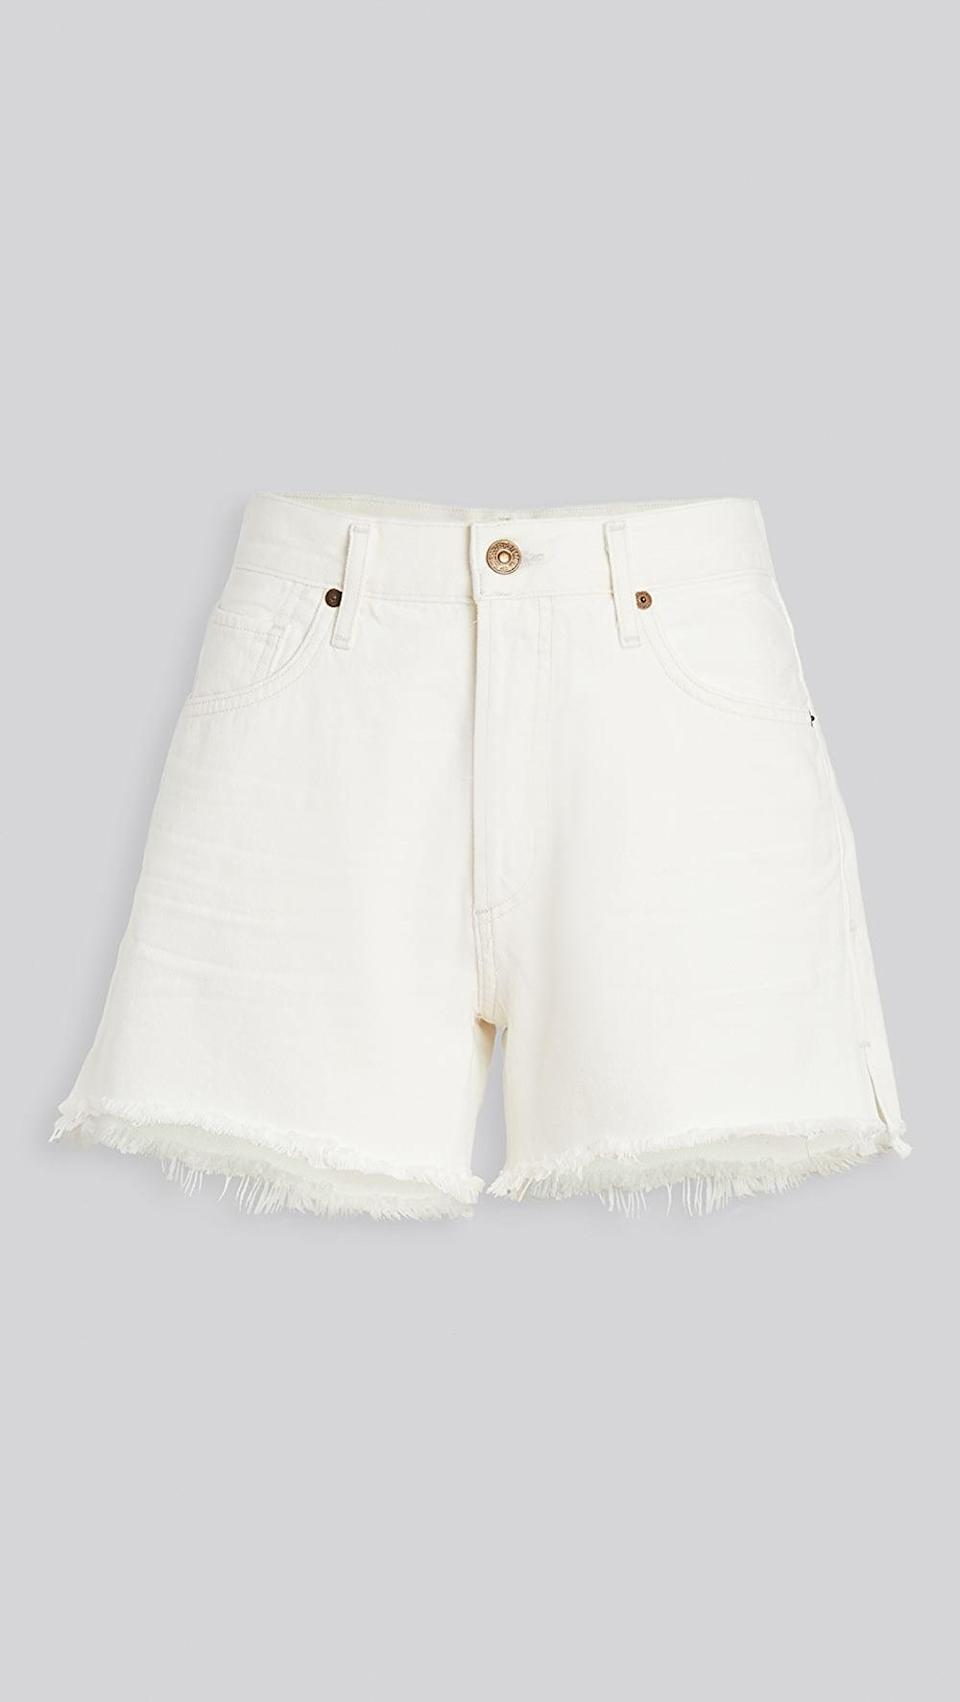 "<p>These <a href=""https://www.popsugar.com/buy/Citizens-Humanity-Marlow-Easy-Shorts-587726?p_name=Citizens%20of%20Humanity%20Marlow%20Easy%20Shorts&retailer=shopbop.com&pid=587726&price=188&evar1=fab%3Aus&evar9=45988379&evar98=https%3A%2F%2Fwww.popsugar.com%2Ffashion%2Fphoto-gallery%2F45988379%2Fimage%2F47603862%2FCitizens-Humanity-Marlow-Easy-Shorts&list1=shopping%2Cdenim%2Cshorts%2Csummer%2Cdenim%20shorts%2Csummer%20fashion&prop13=mobile&pdata=1"" class=""link rapid-noclick-resp"" rel=""nofollow noopener"" target=""_blank"" data-ylk=""slk:Citizens of Humanity Marlow Easy Shorts"">Citizens of Humanity Marlow Easy Shorts</a> ($188) look so good on.</p>"